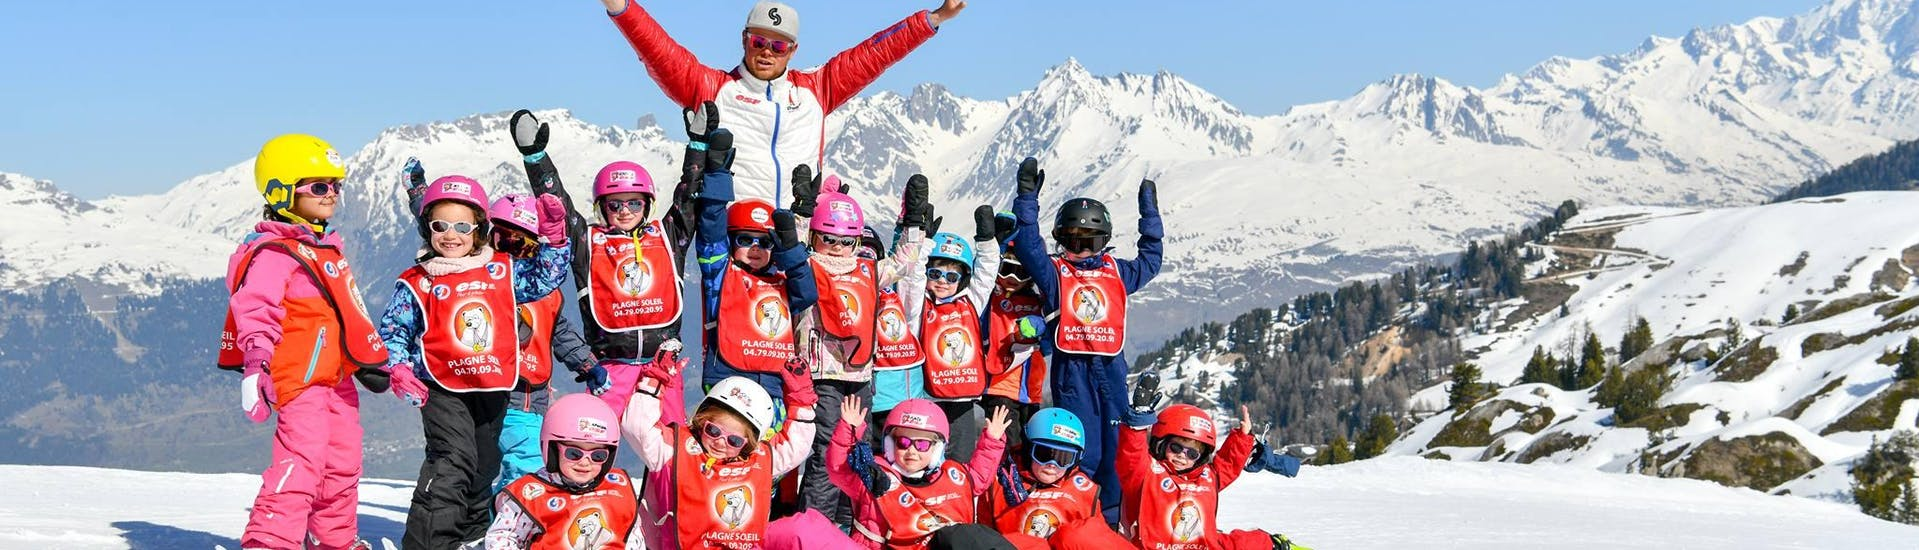 ski-lessons-for-kids-5-12-years-afternoon-holidays-esf-la-plagne-hero-OK